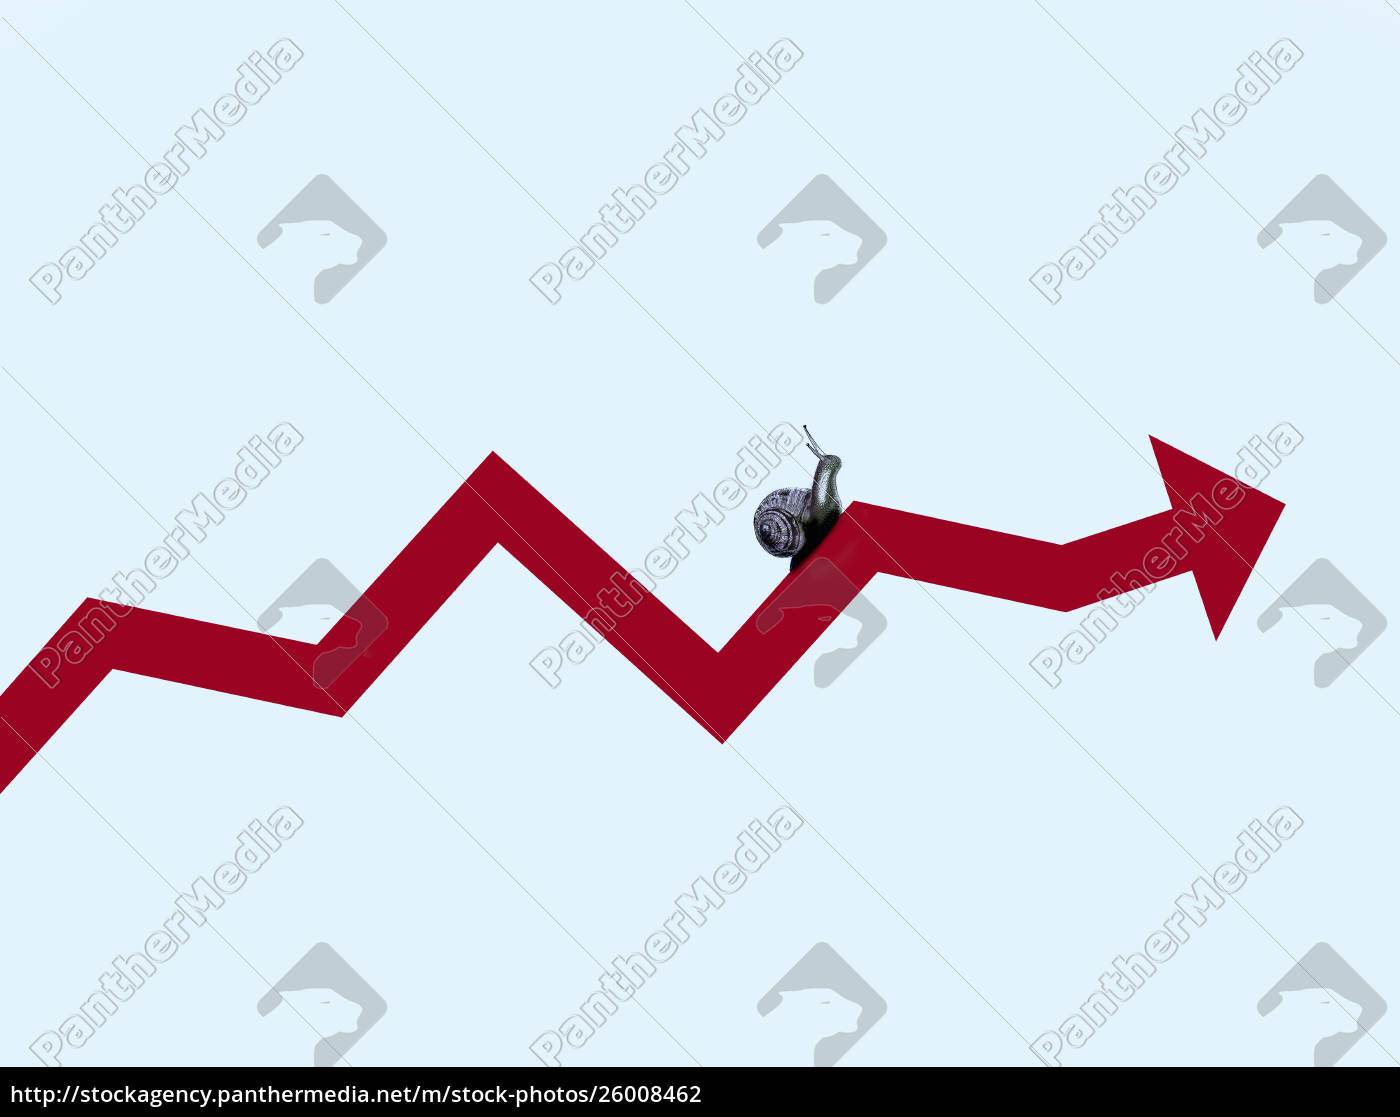 snail, crawling, along, line, graph, arrow - 26008462